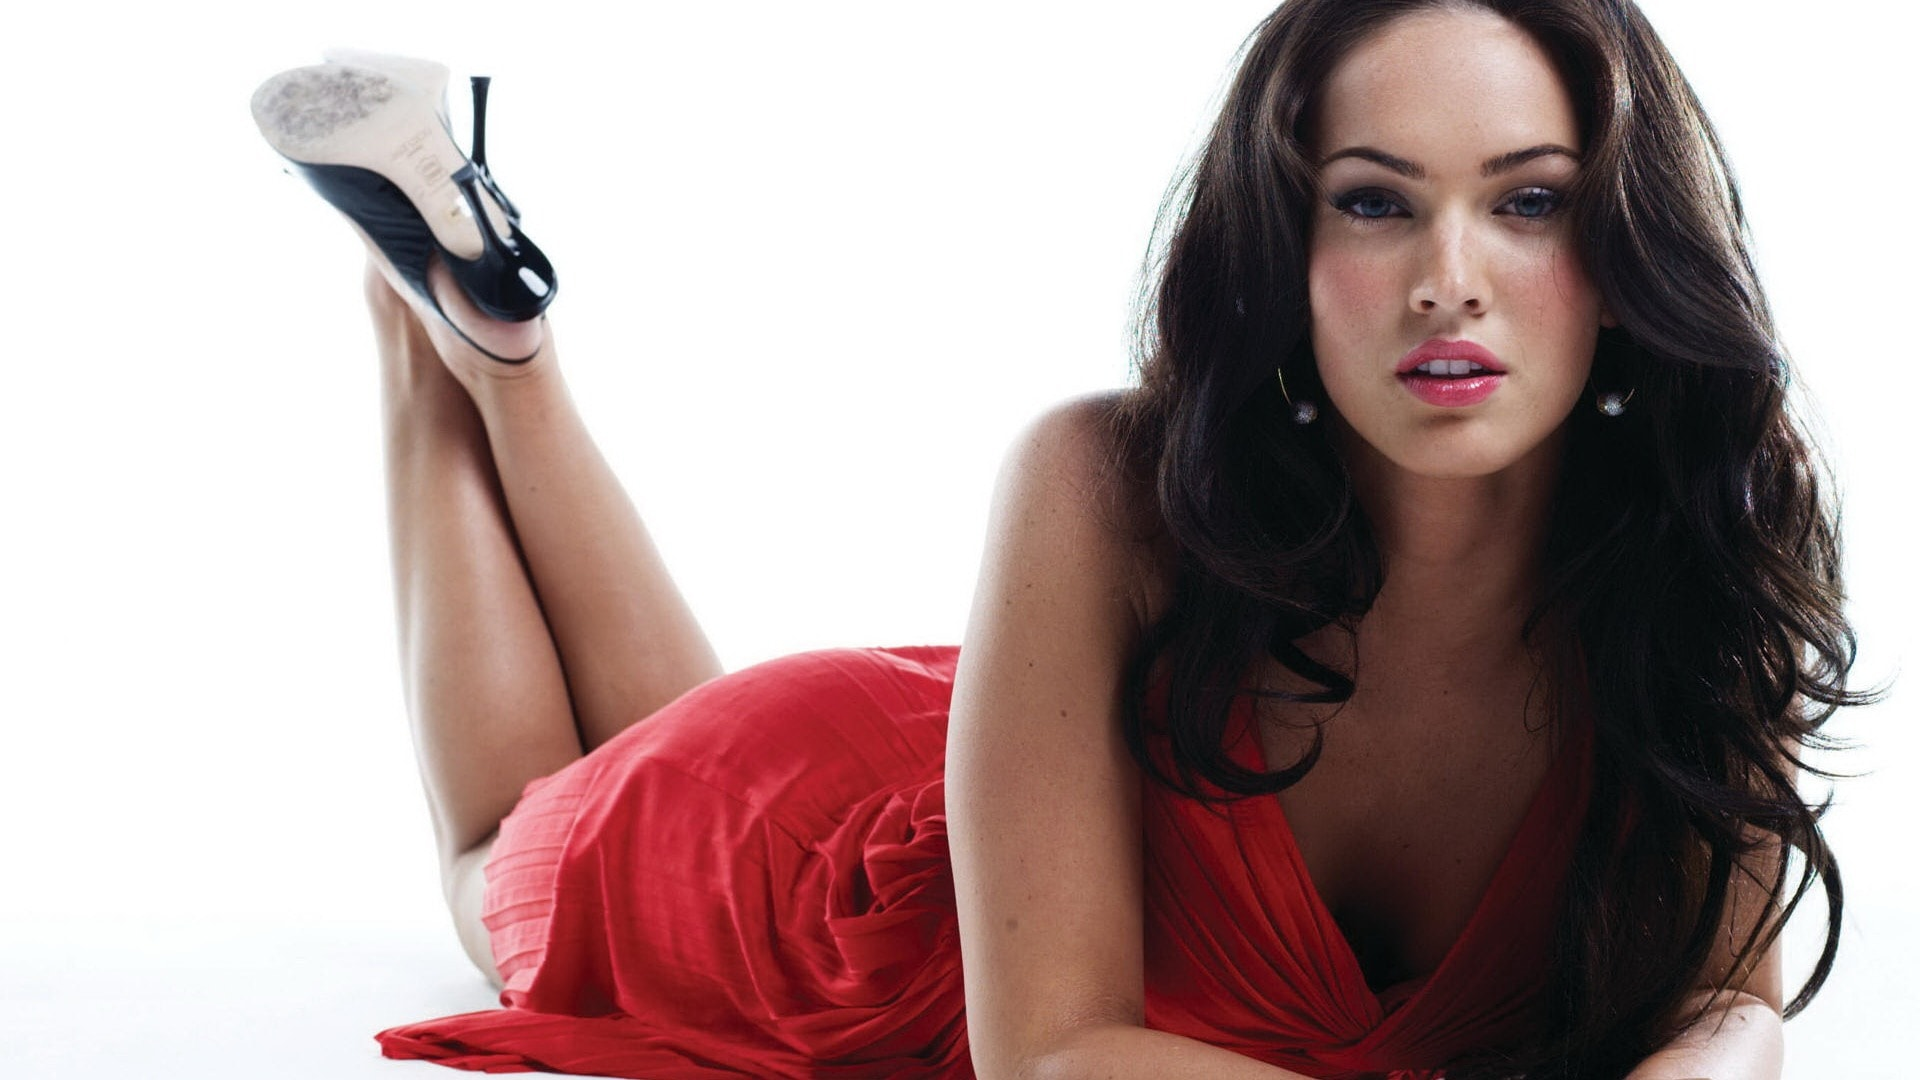 Megan Fox Desktop wallpapers